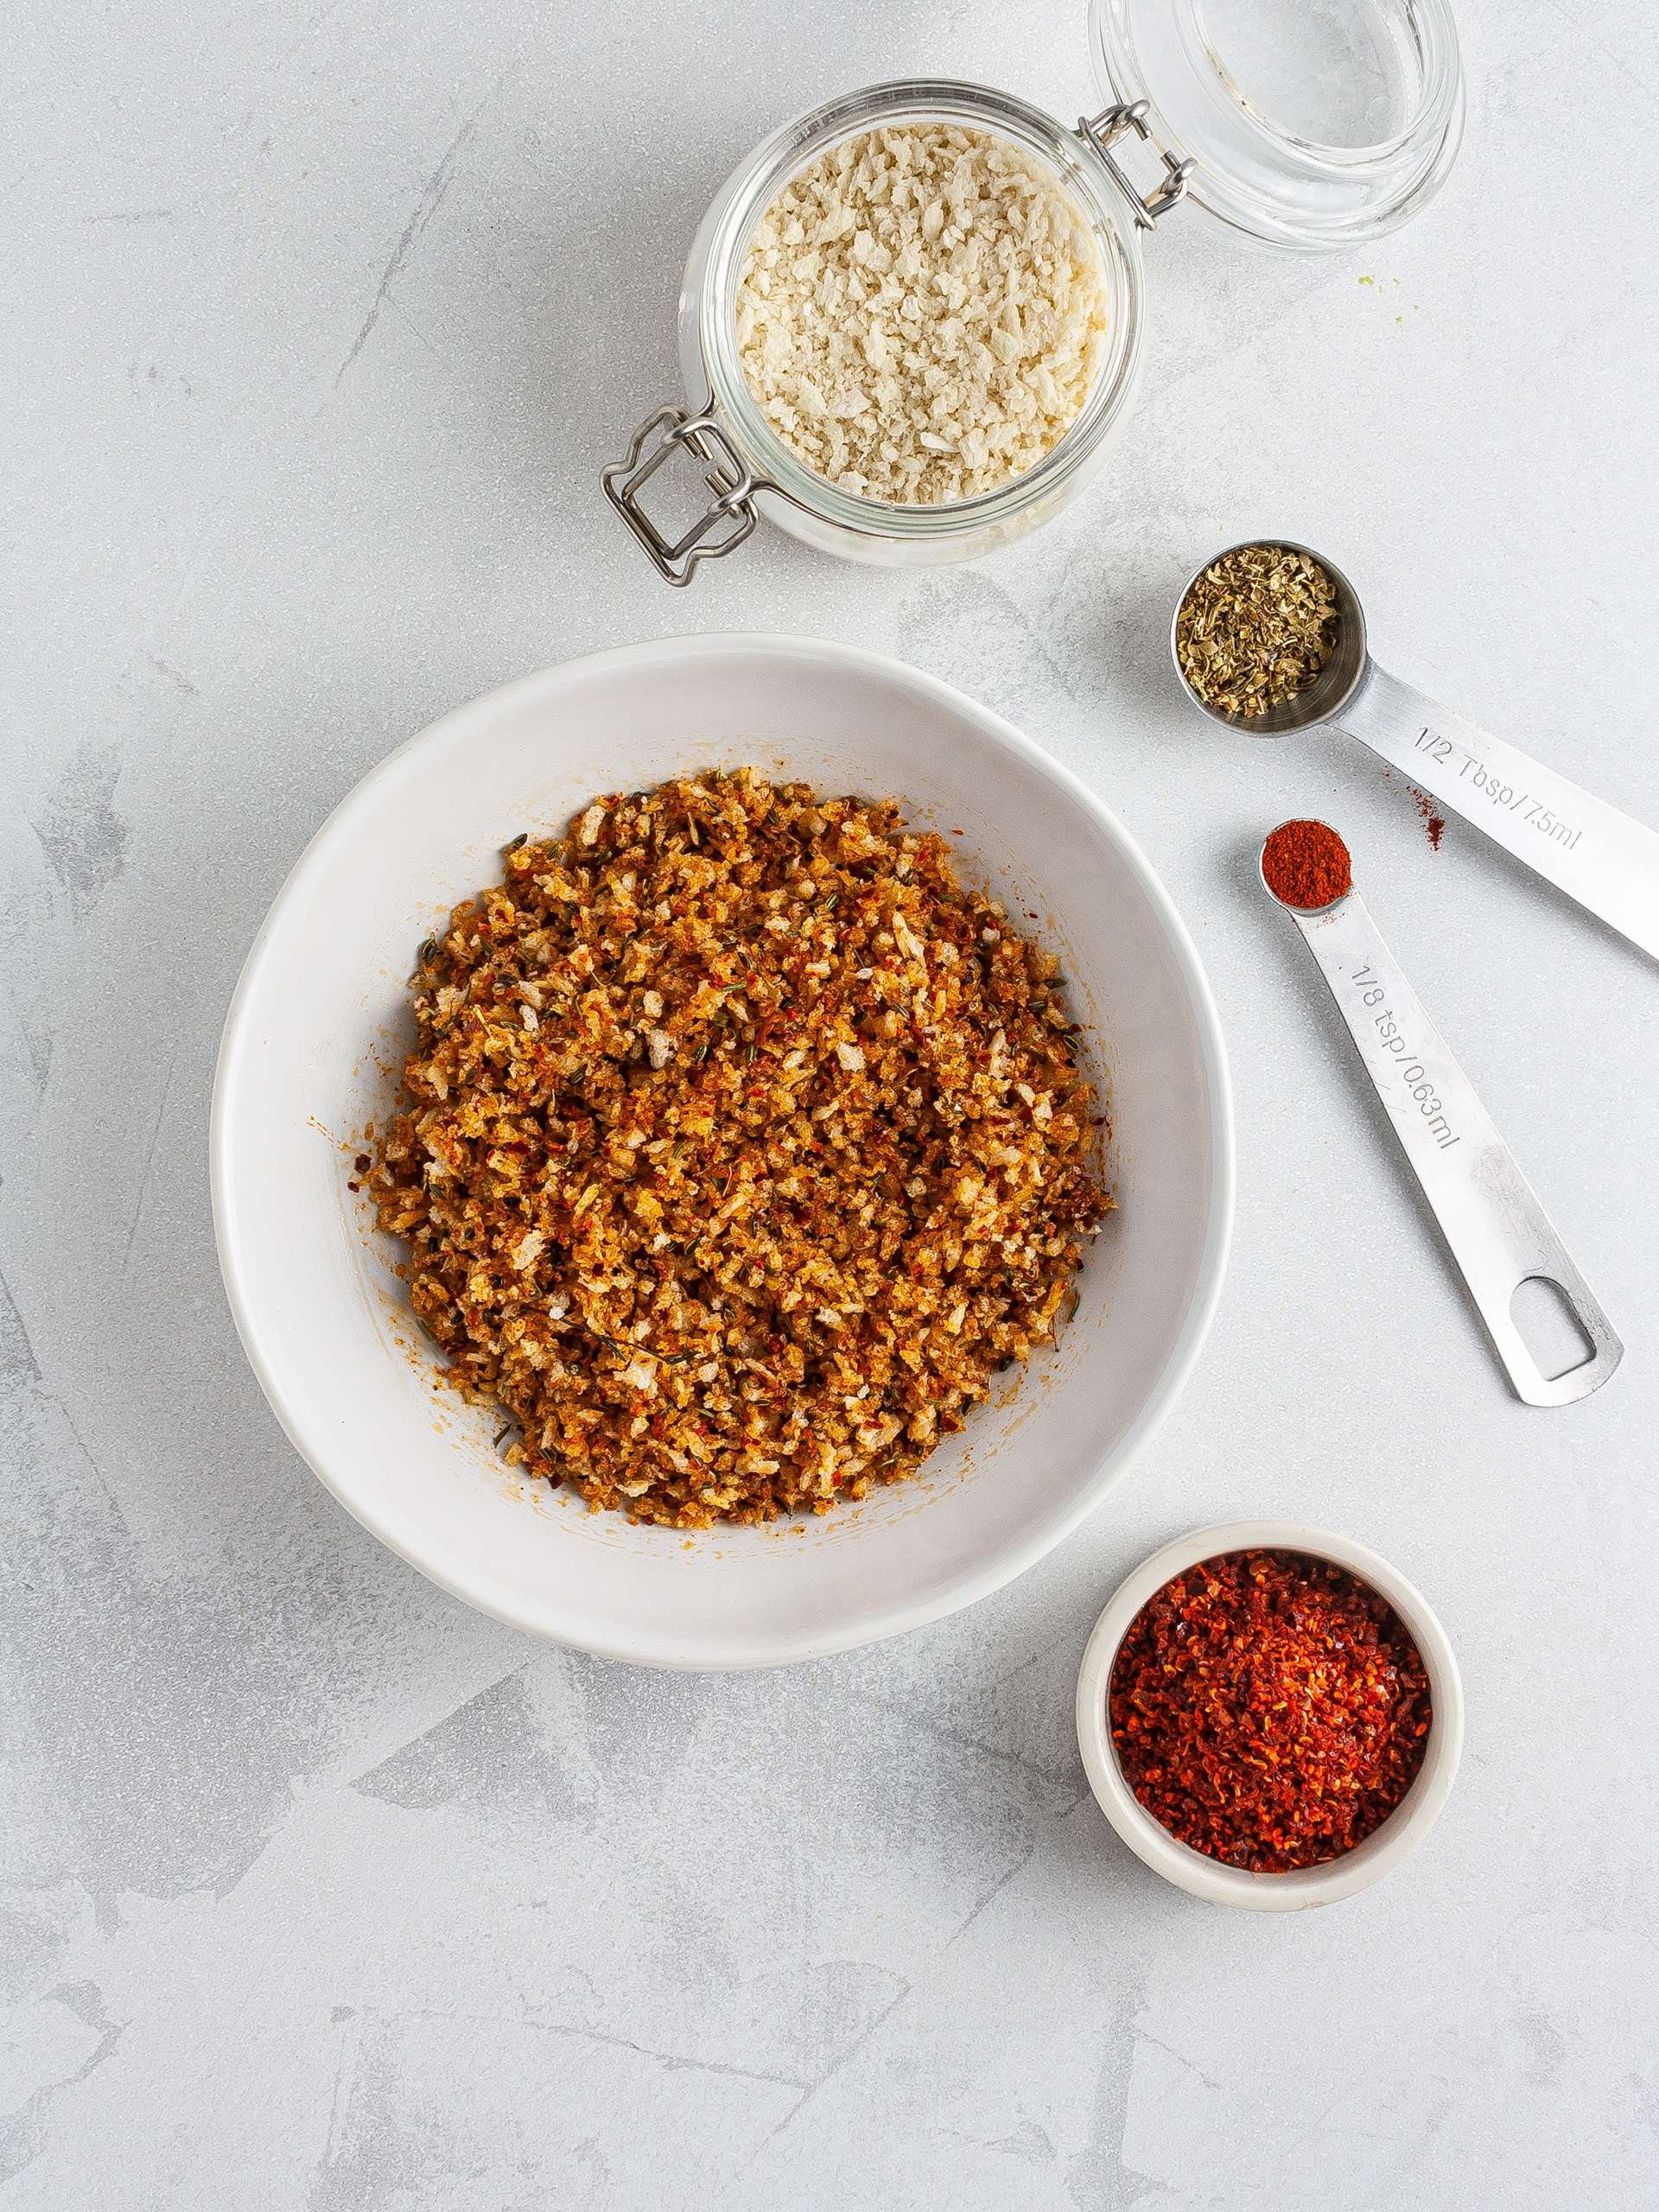 Spicy breadcrumb coating with paprika, oregano, chillies